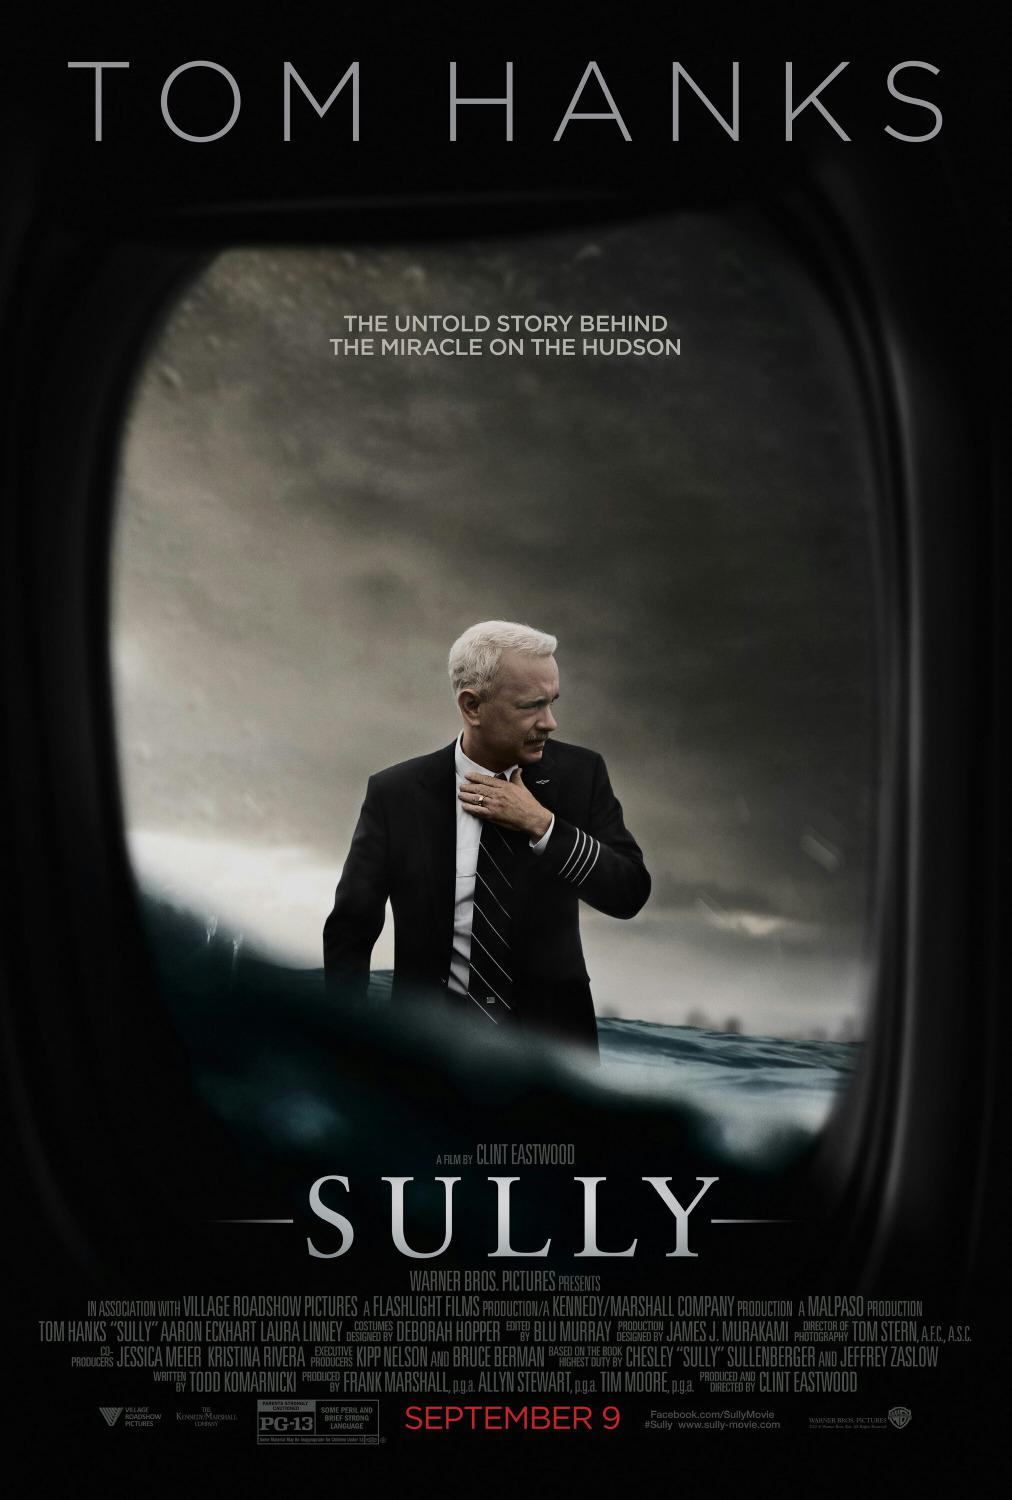 Sully - Tom Hanks